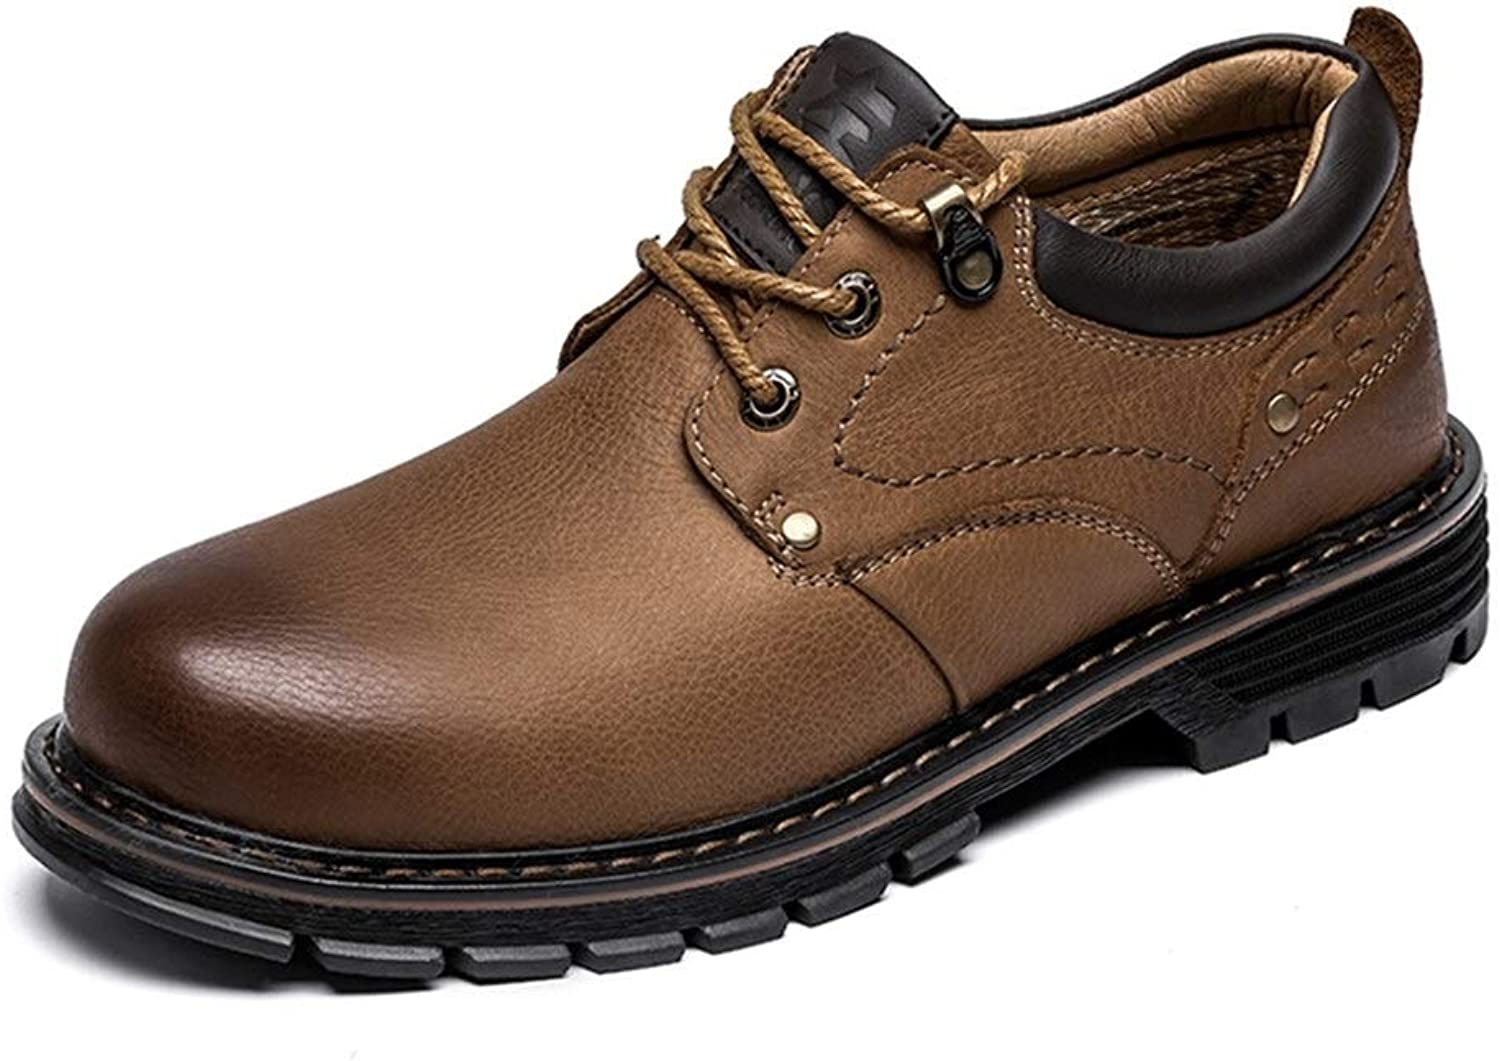 MUMUWU Fashion Oxfords for Men Lace Up Style Cowhide Leather Casual Round Toe Leisure Work shoes (color   Brown, Size   9.5 M US)